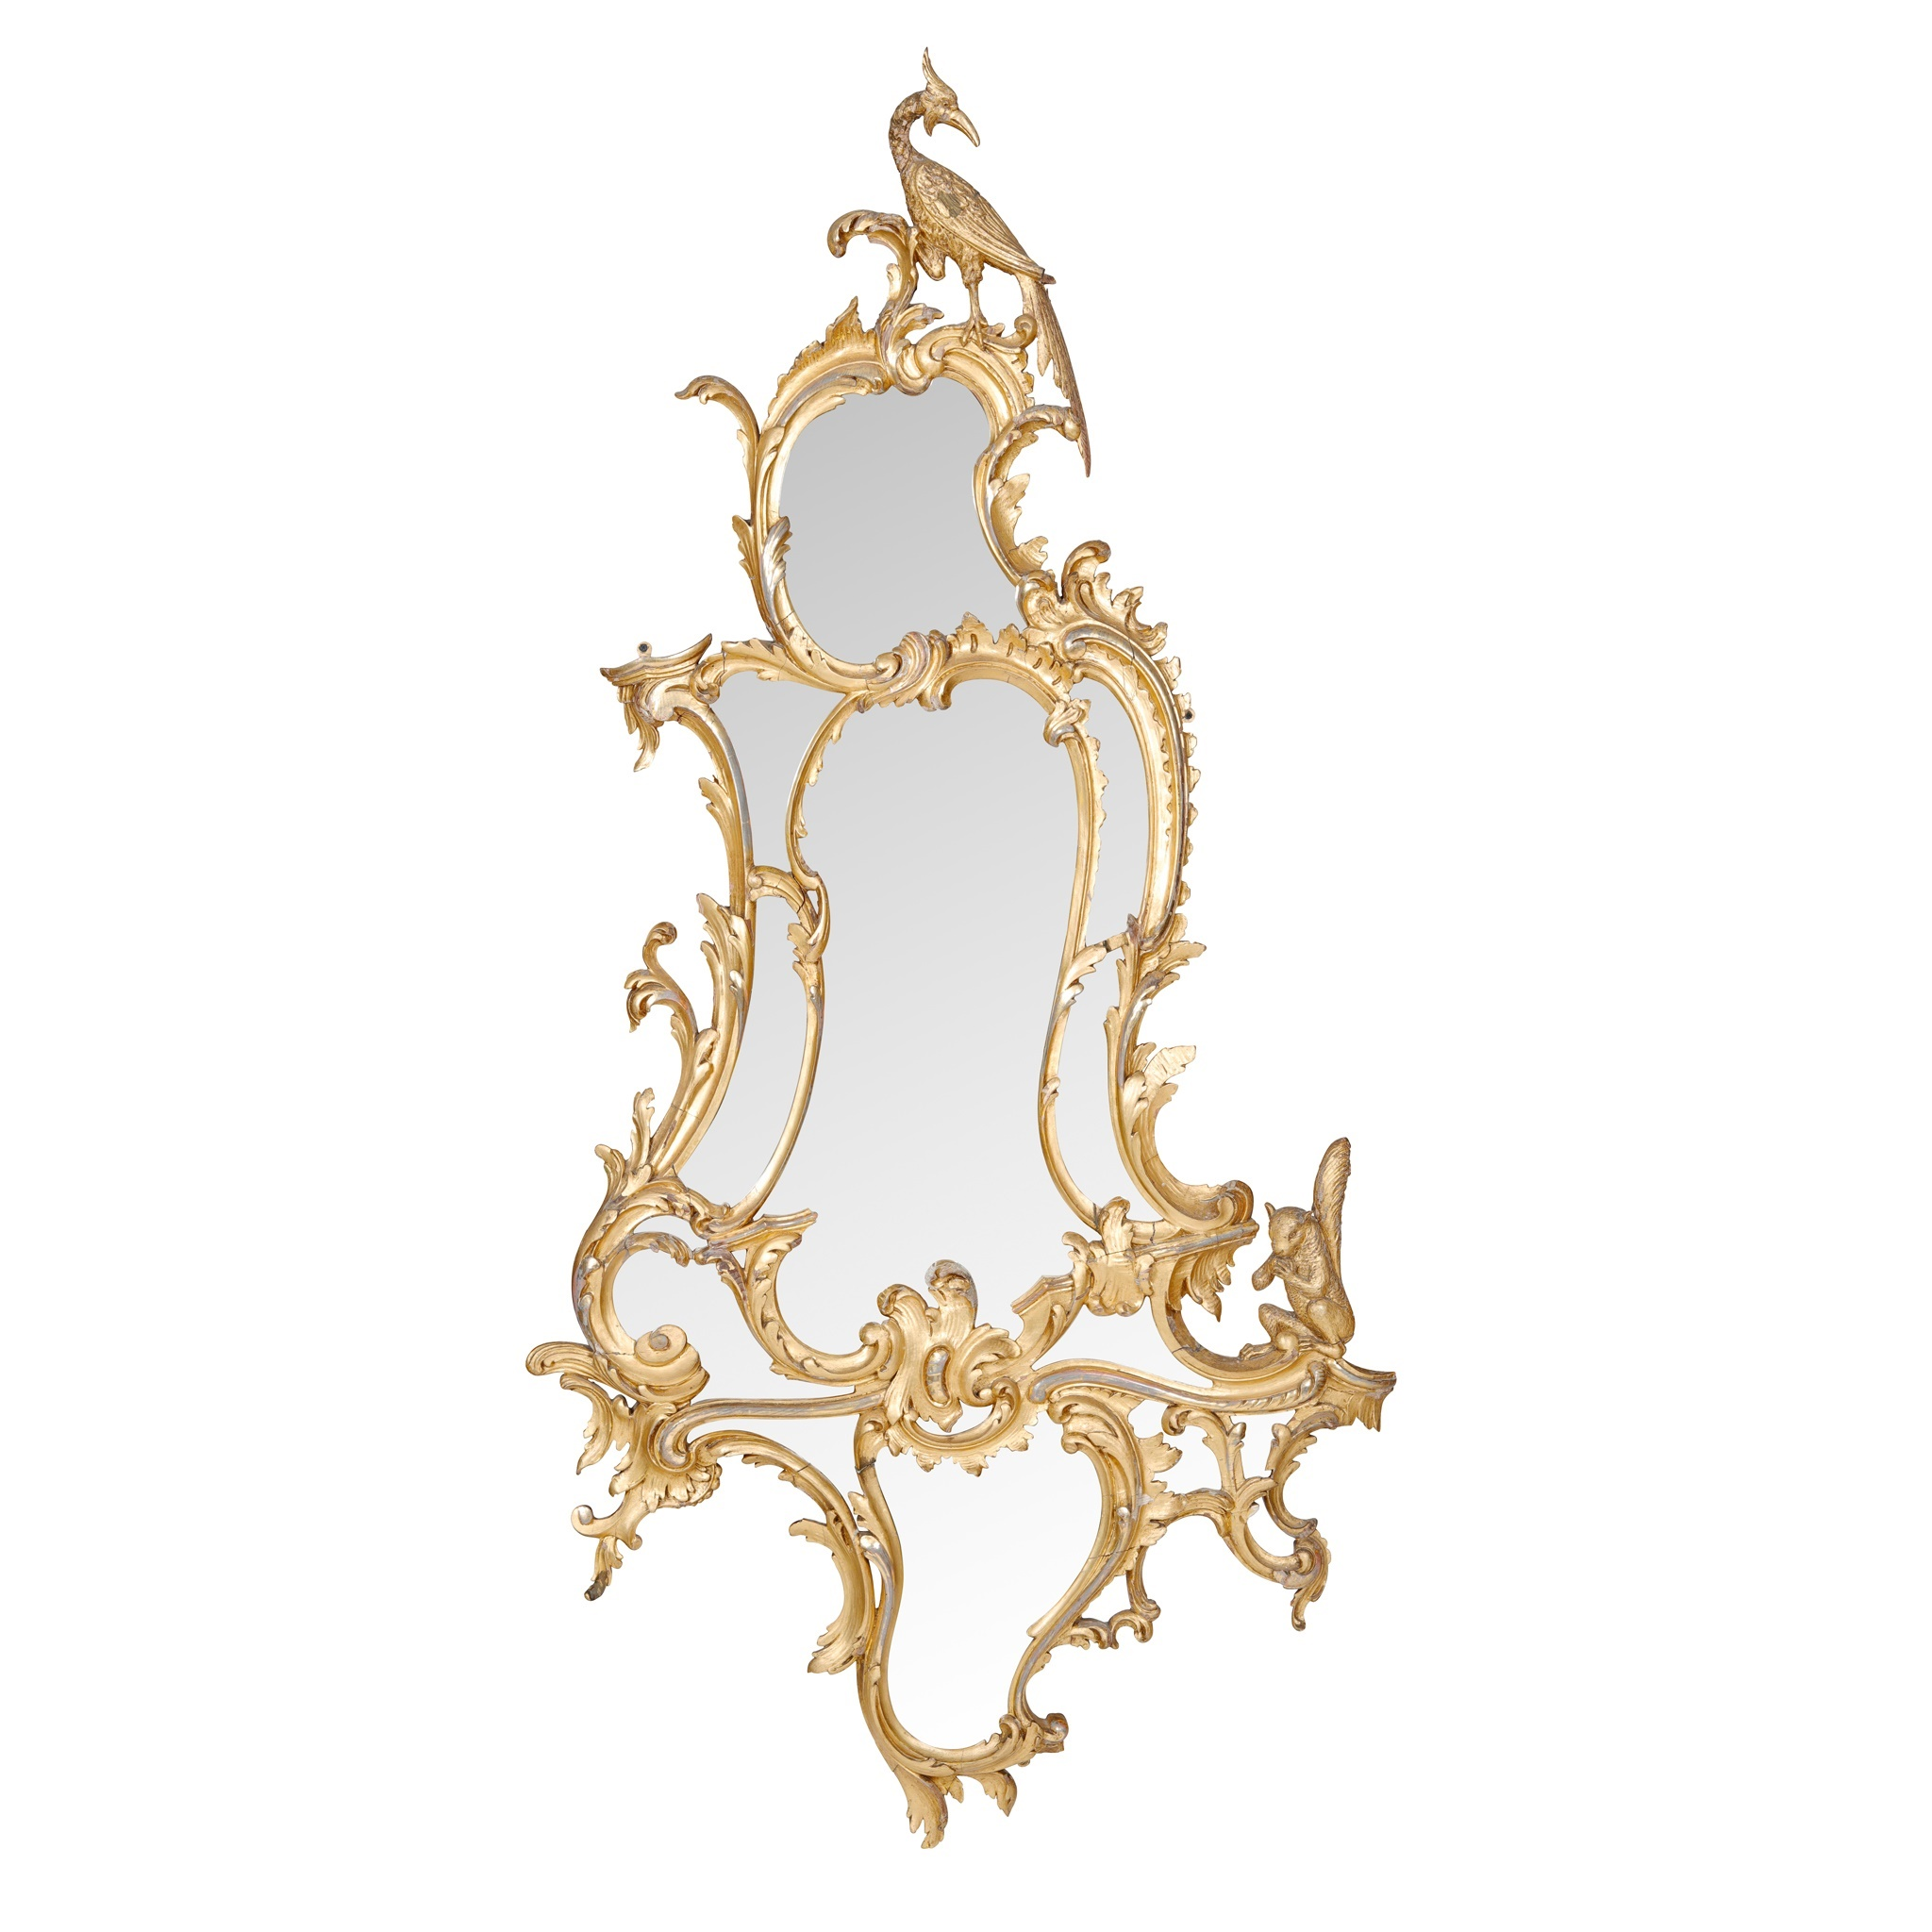 LOT 107 | CHIPPENDALE STYLE GILT WOOD MIRROR | 19TH CENTURY